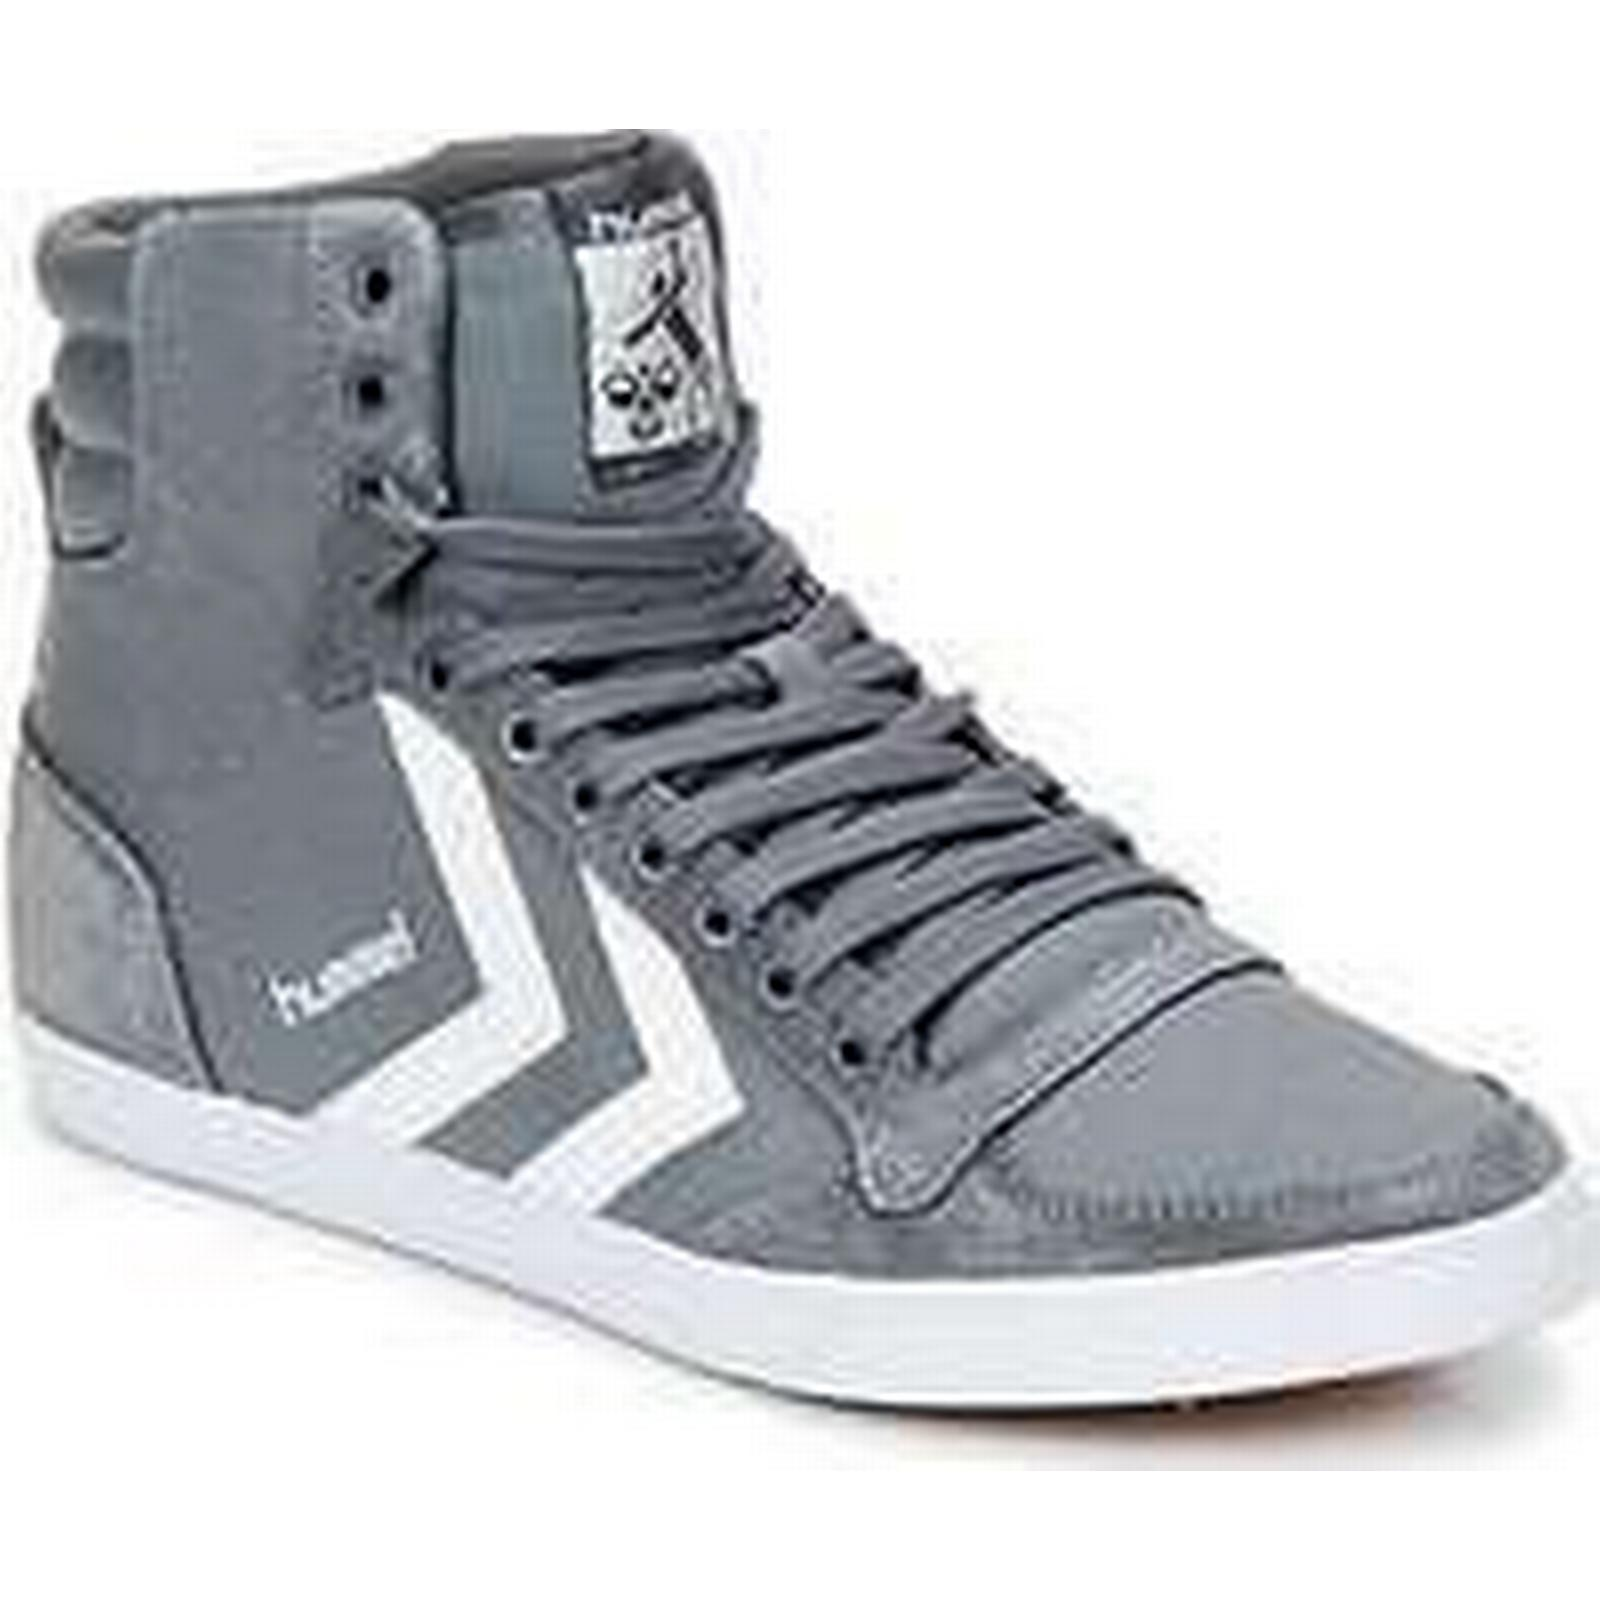 Spartoo.co.uk Hummel TEN STAR HIGH in men's Shoes (High-top Trainers) in HIGH Grey e2b902